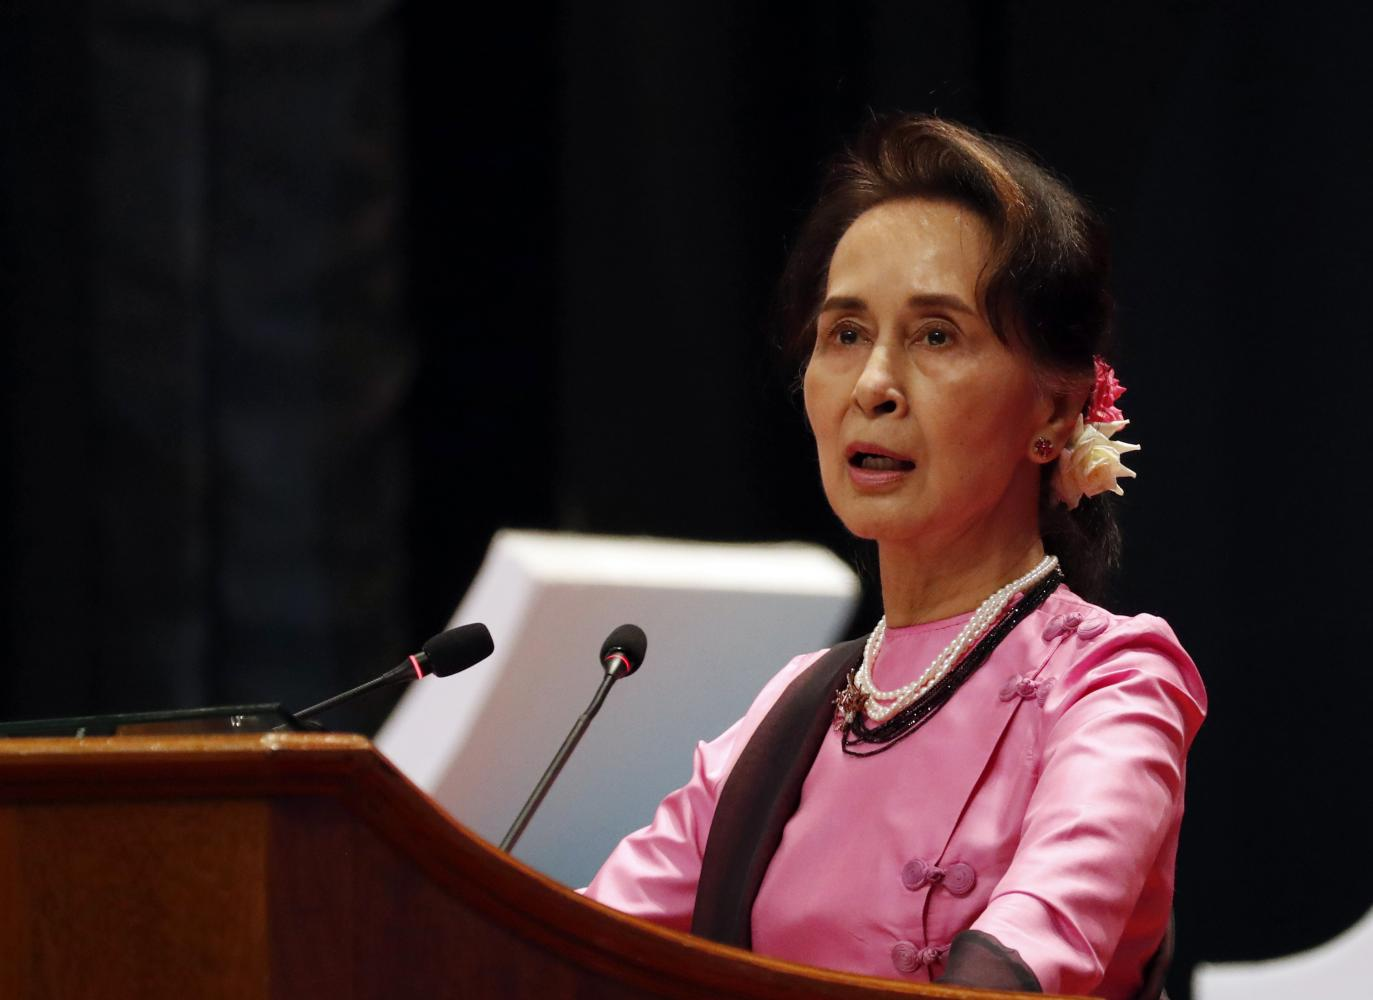 Myanmar's leader Aung San Suu Kyi speaks in Naypyitaw on Friday. She will lead the country's defence team to contest a case at the International Court of Justice. (AP photo)